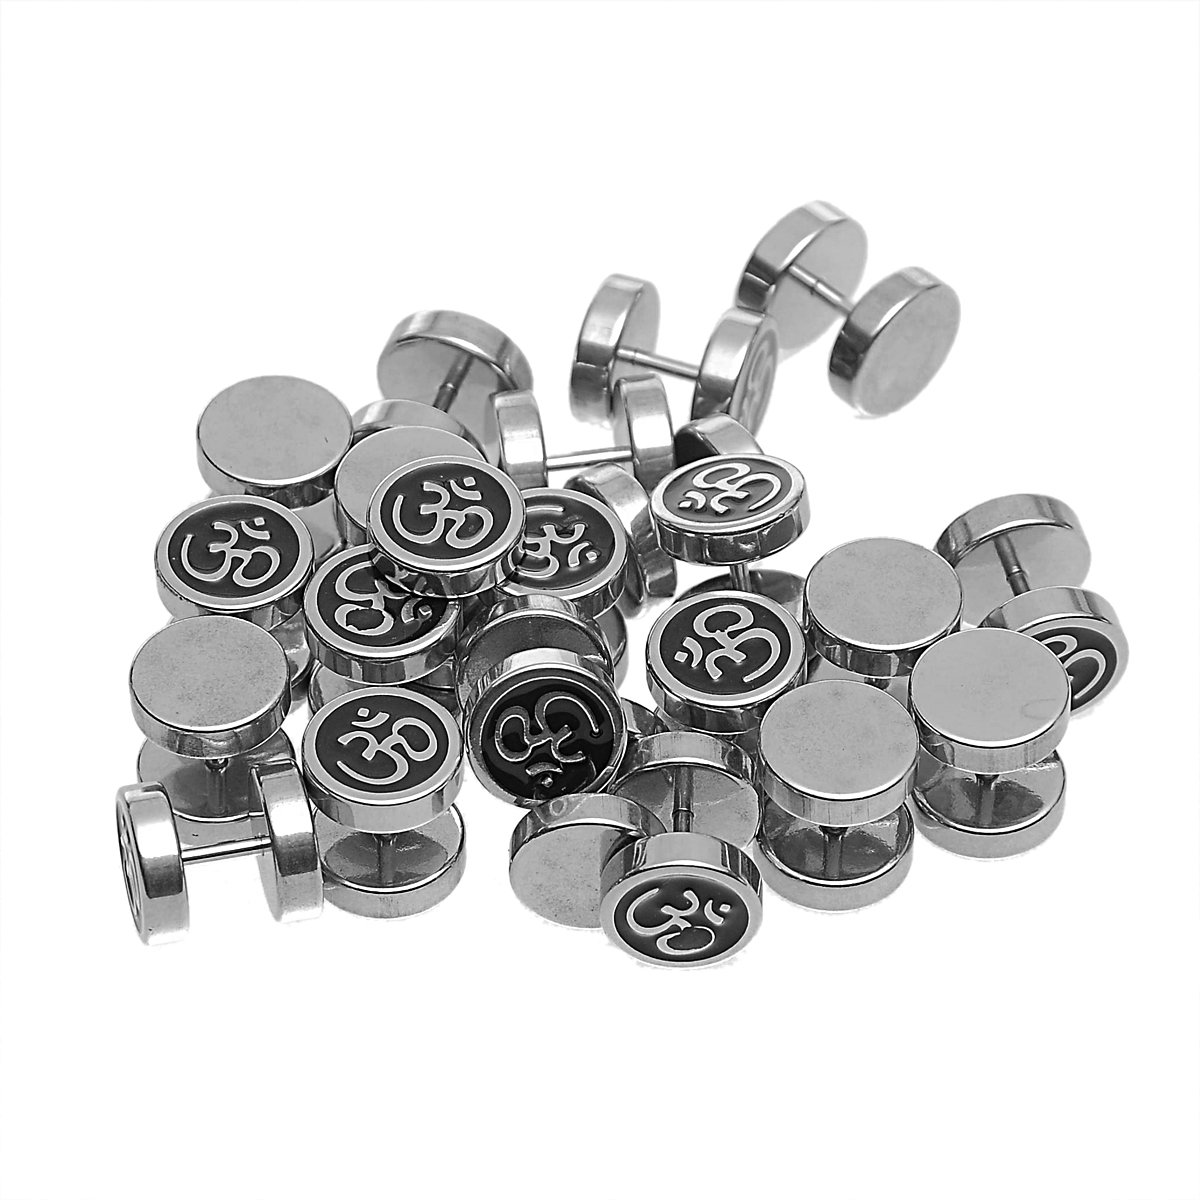 HOUSWEETY 316L Stainless Steel Round Om/Aum Sign Screw Back Barbell Stud Earrings 10mm-1pair by Housweety (Image #2)